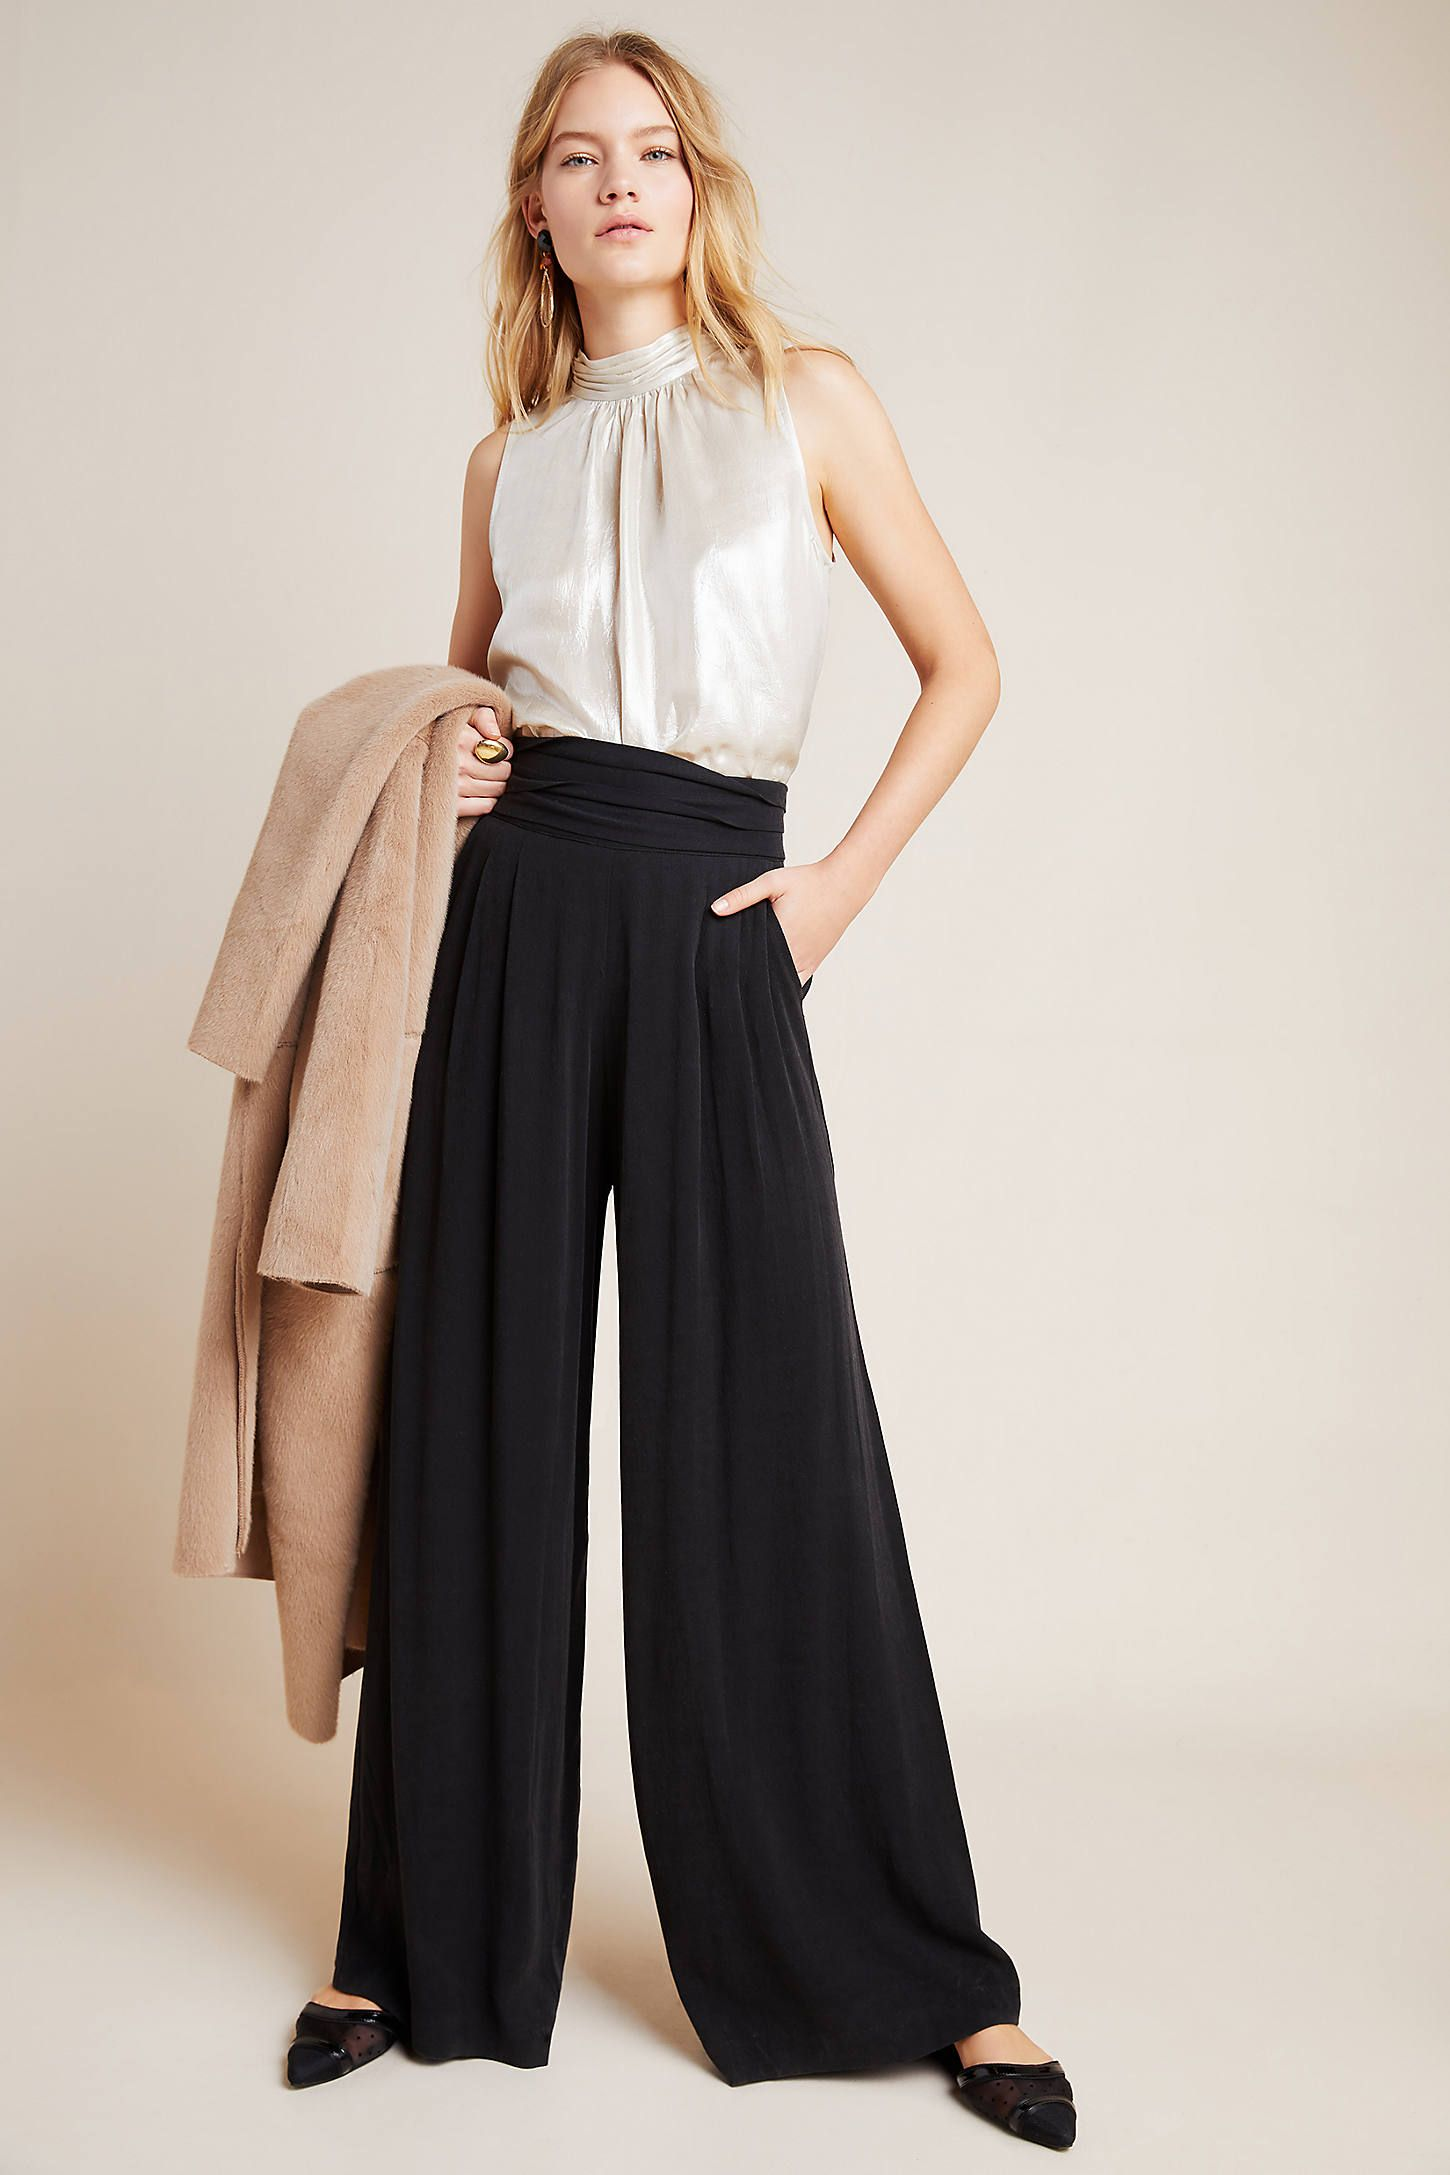 Ophelia Wide-Leg Trousers by The Odells in Black Size: S, Women's Pants at Anthropologie 2